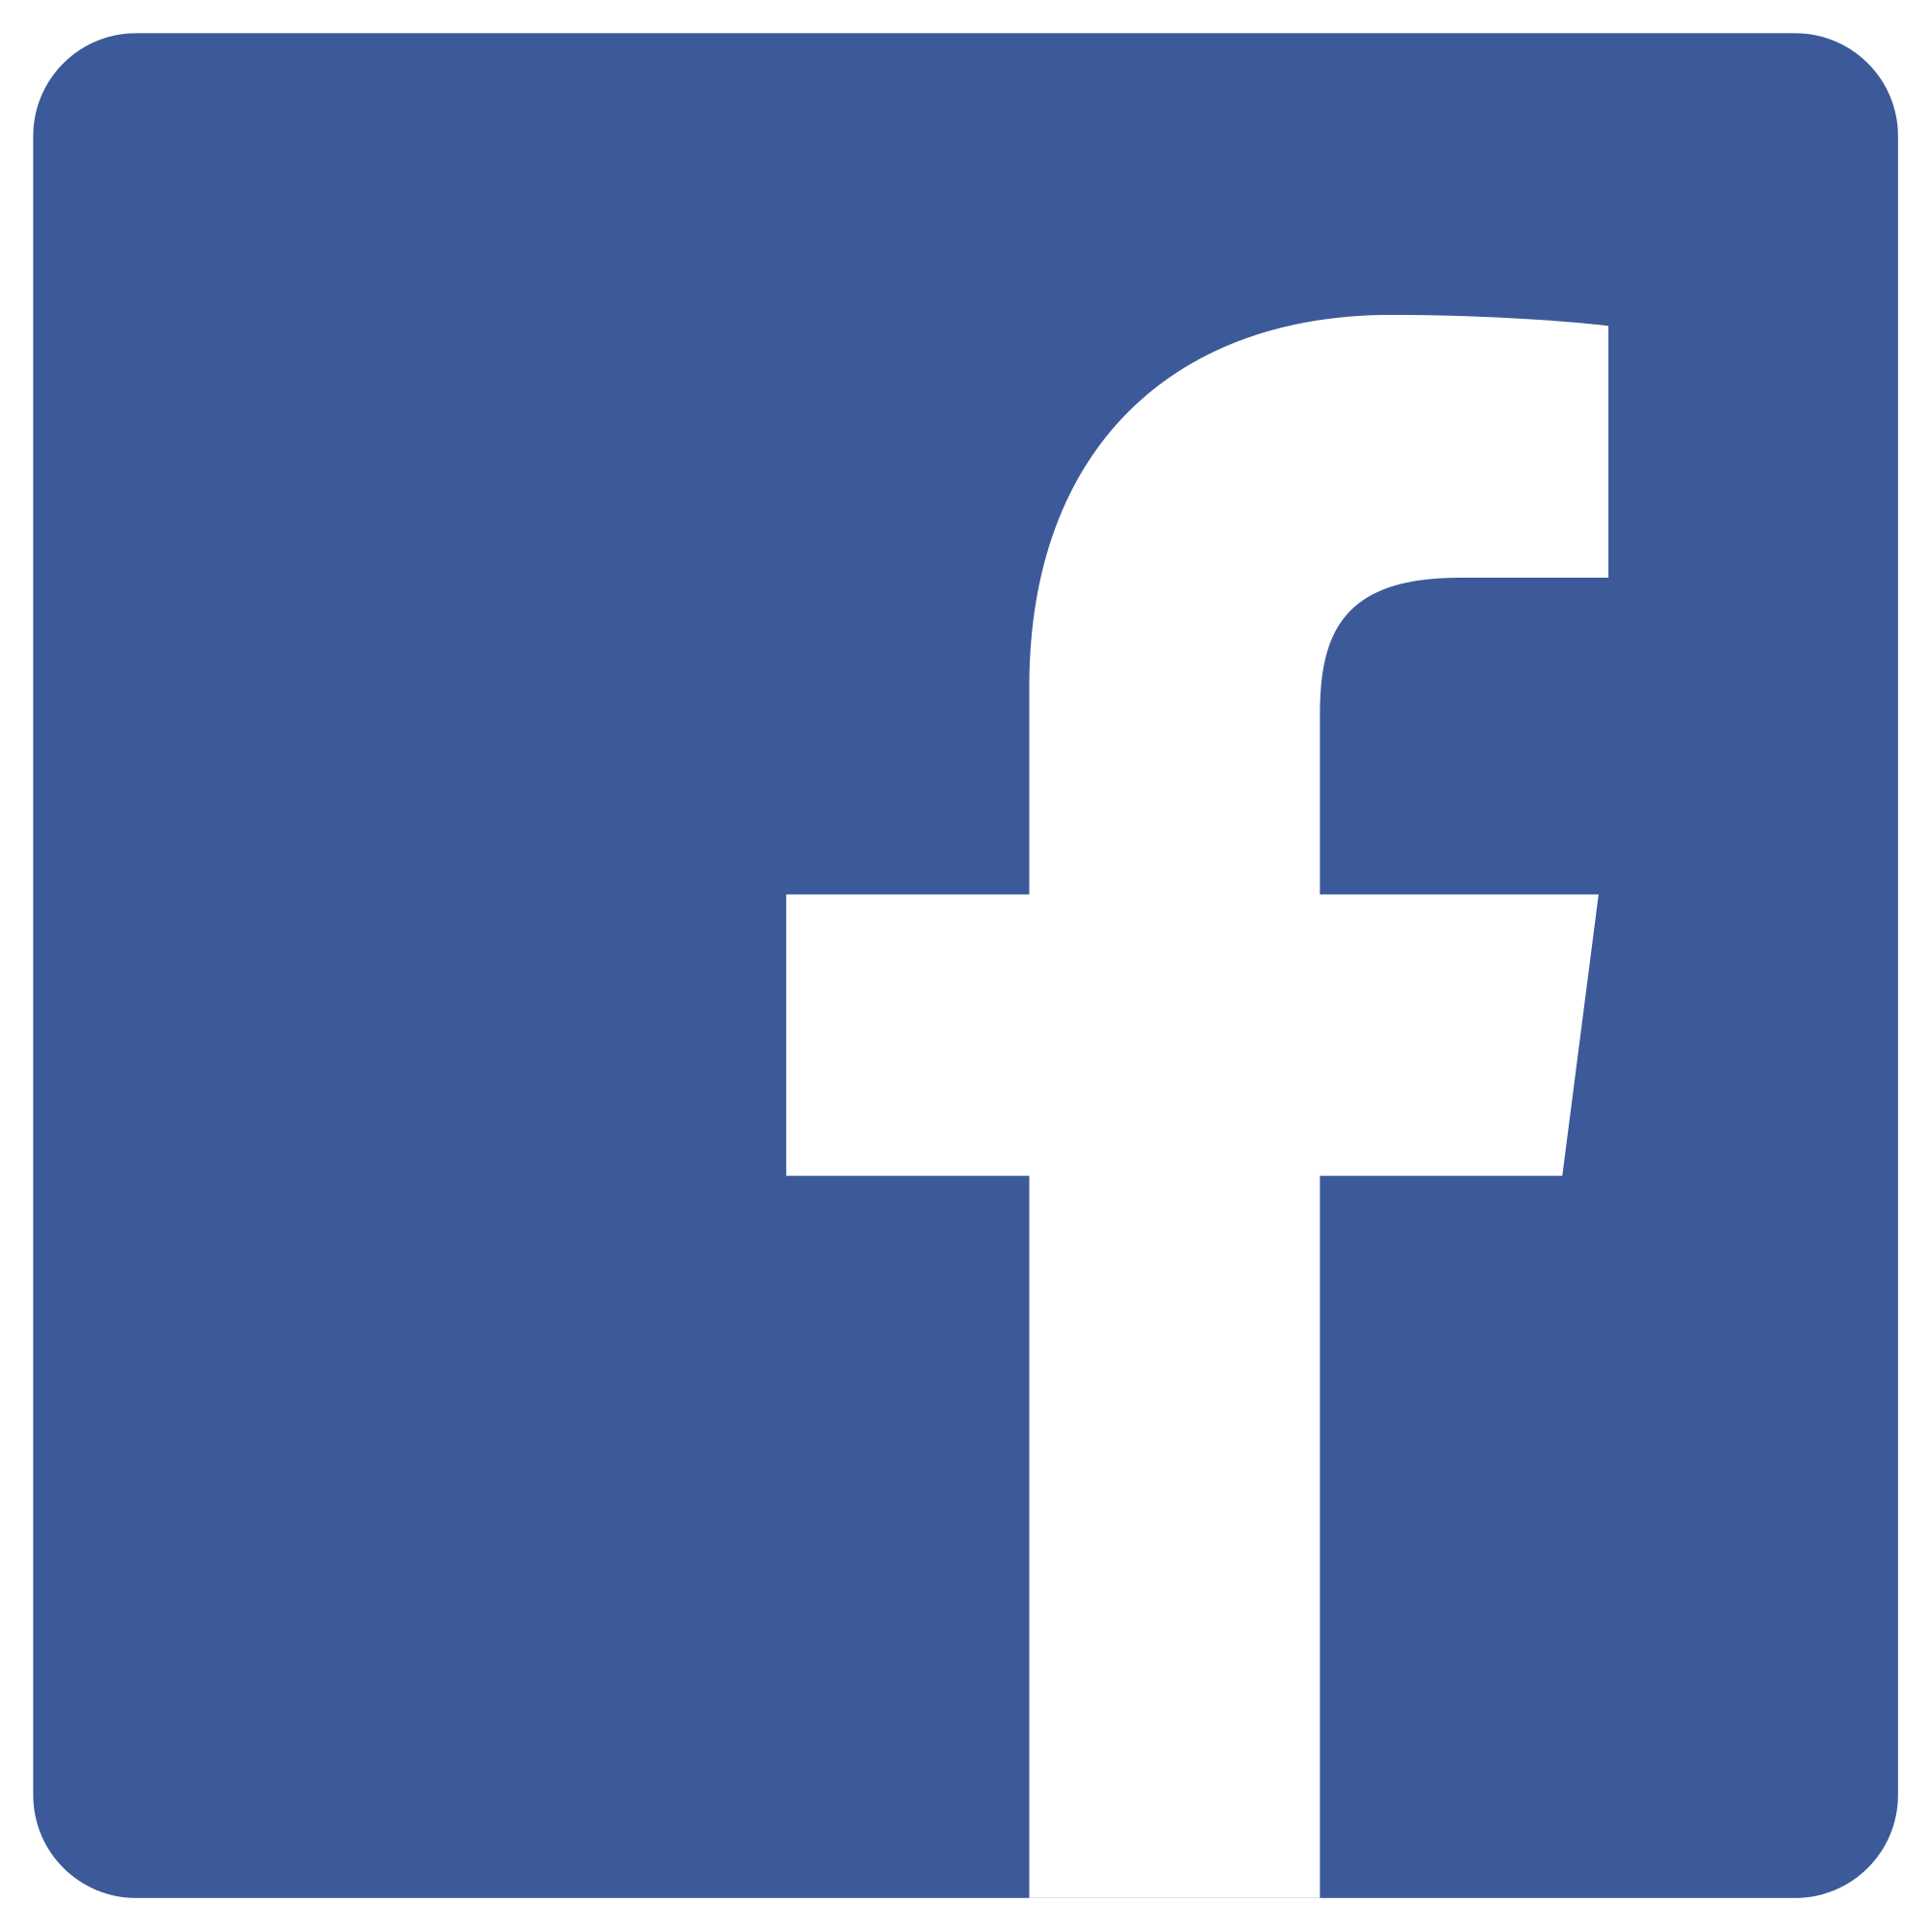 facebook-icon-transparent-background-3